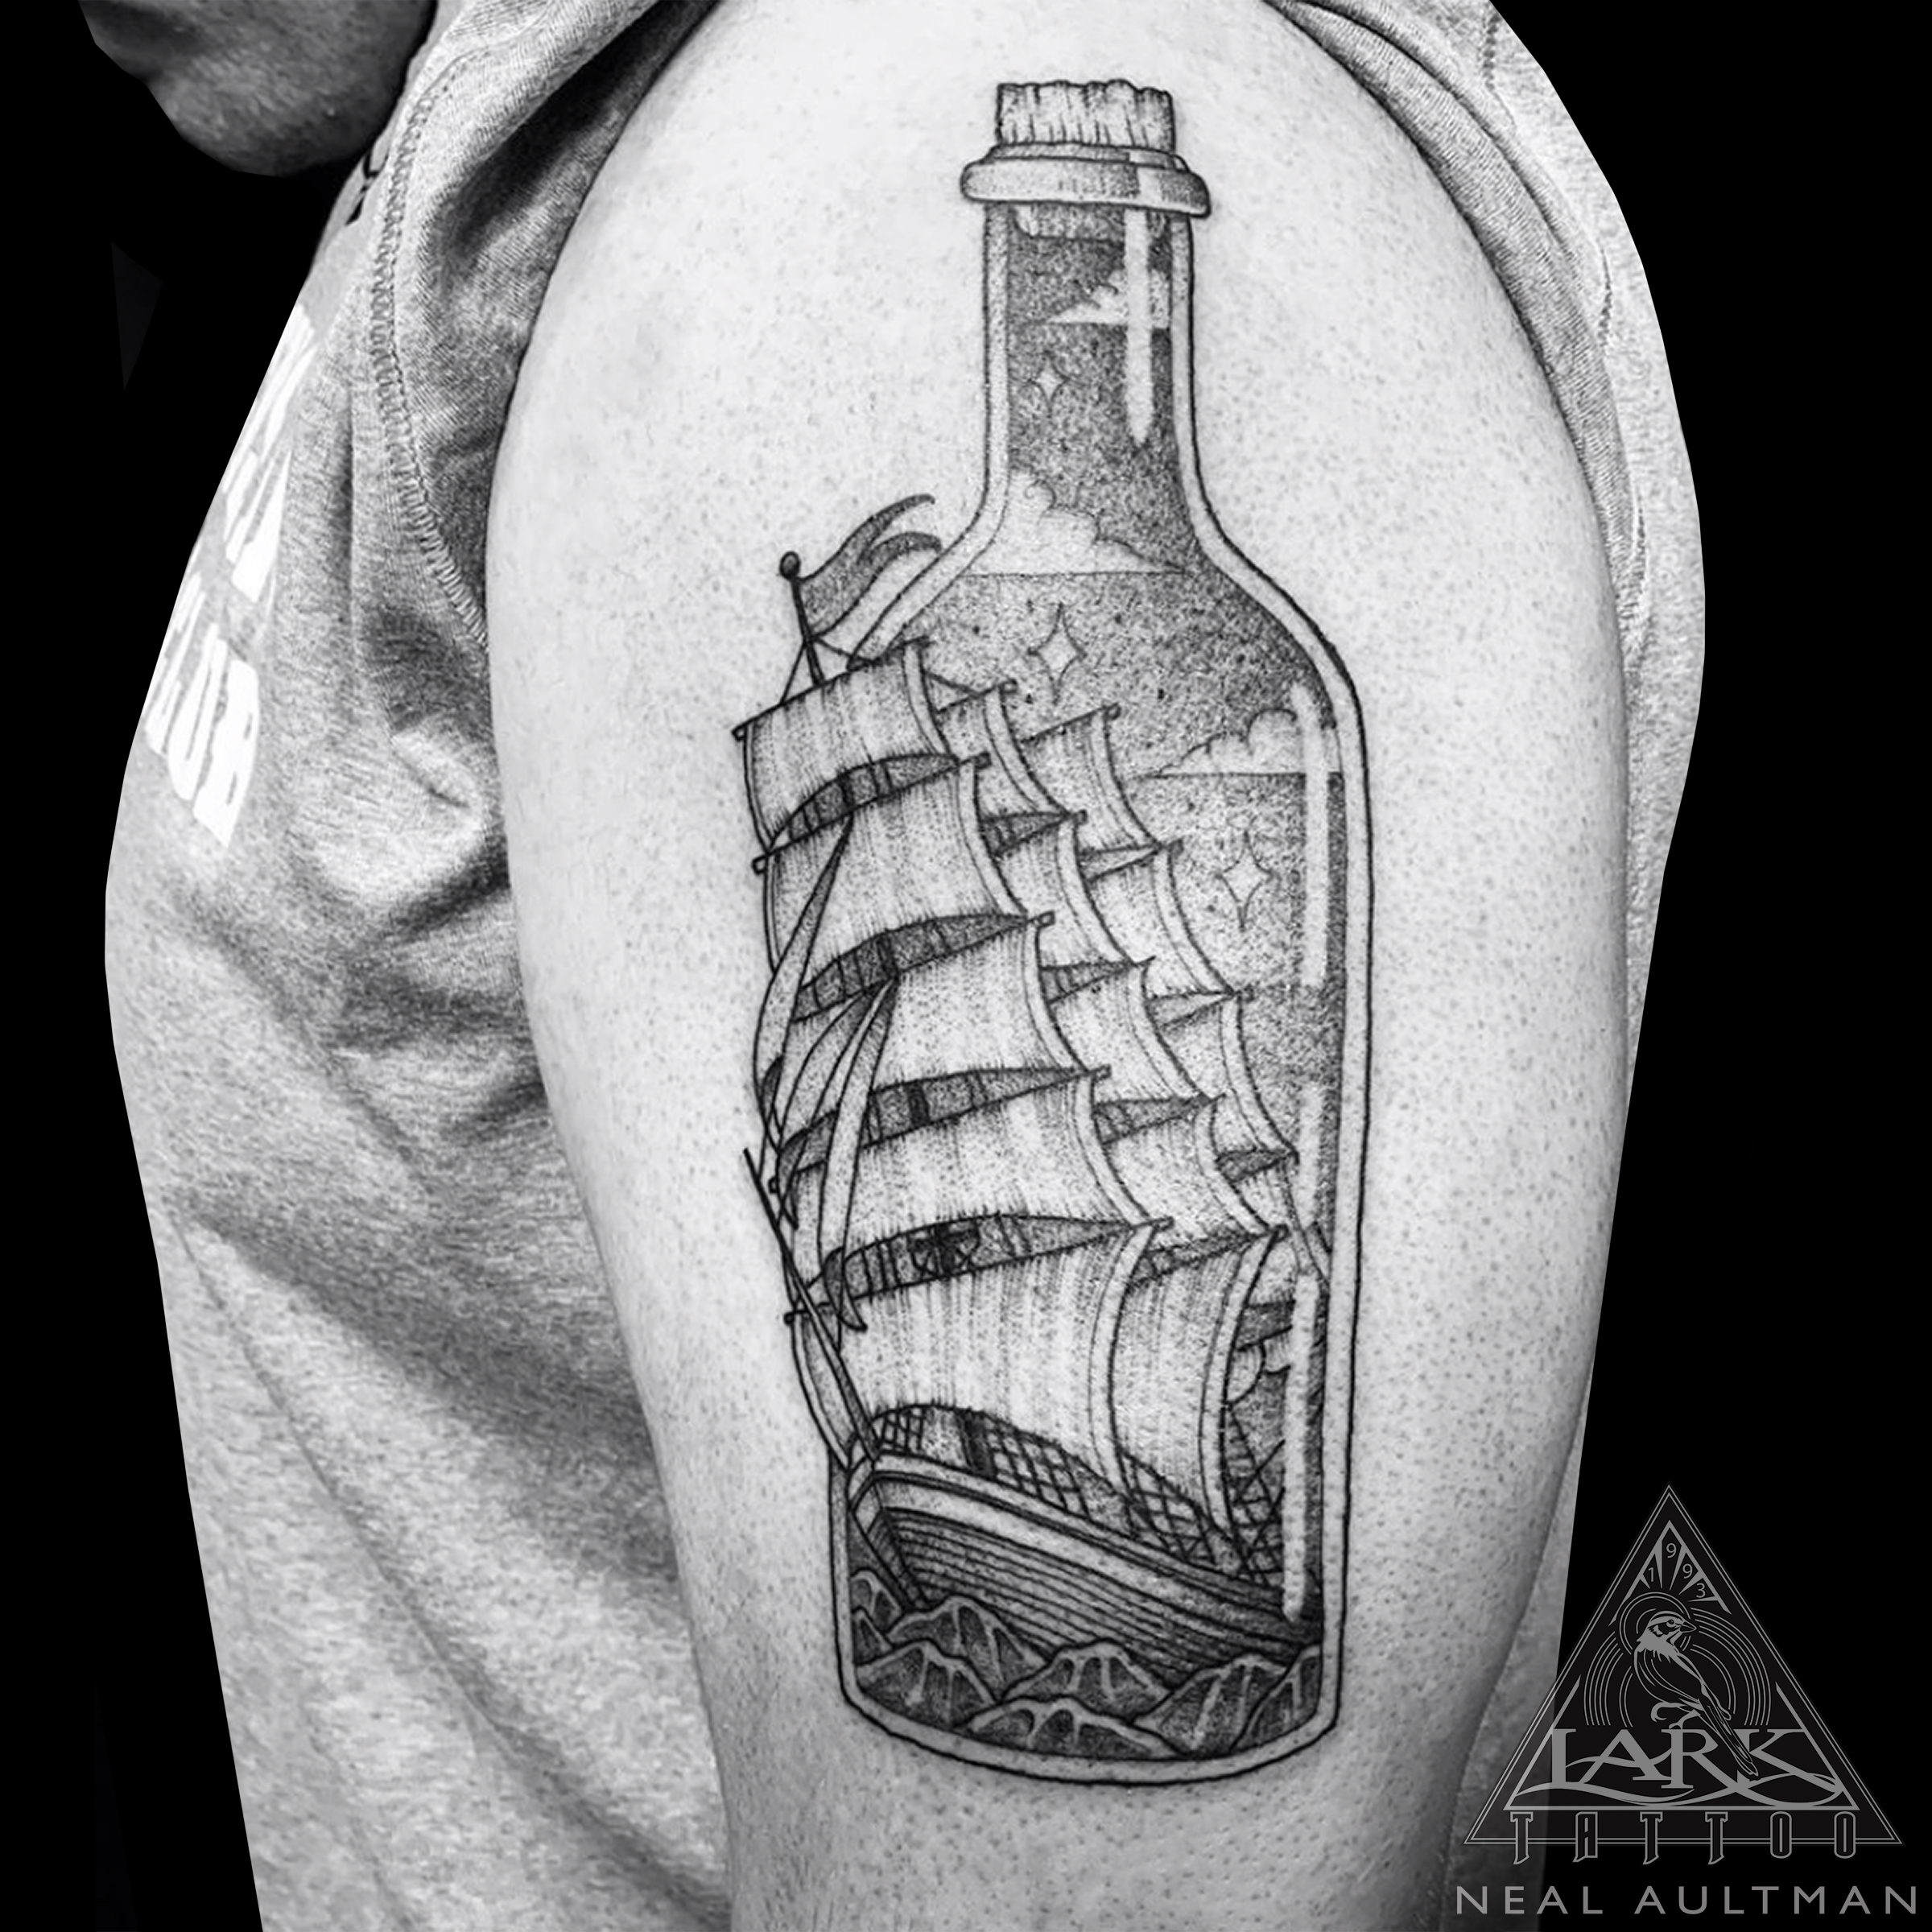 #ShipInABottle #ShipInABottleTattoo #Clipper #ClipperTattoo #ClipperShipTattoo #BlackWork #BlackWorkTattoo #DotWork #DotWorkTattoo #LinesAndDots #LinesAndDotsTattoo #Stipple #StippleTattoo #BNG #BNGTattoo #BlackAndGray #BlackAndGrayTattoo #BlackAndGrey #BlackAndGreyTattoo #Ocean #OceanTattoo #Ship #ShipTattoo #Nautical #NauticalTattoo #LarkTattoo #Tattoo #Tattoos #Tat #Tats #Tatts #Tatted #Tattedup #Tattoist #Tattooed #Inked #InkedUp #Ink #TattooOfTheDay #AmazingInk #BodyArt #LongIslandTattooArtist #LongIslandTattooer #LarkTattoos #LarkTattooWestbury #Westbury #LongIsland #NY #NewYork #USA #Art